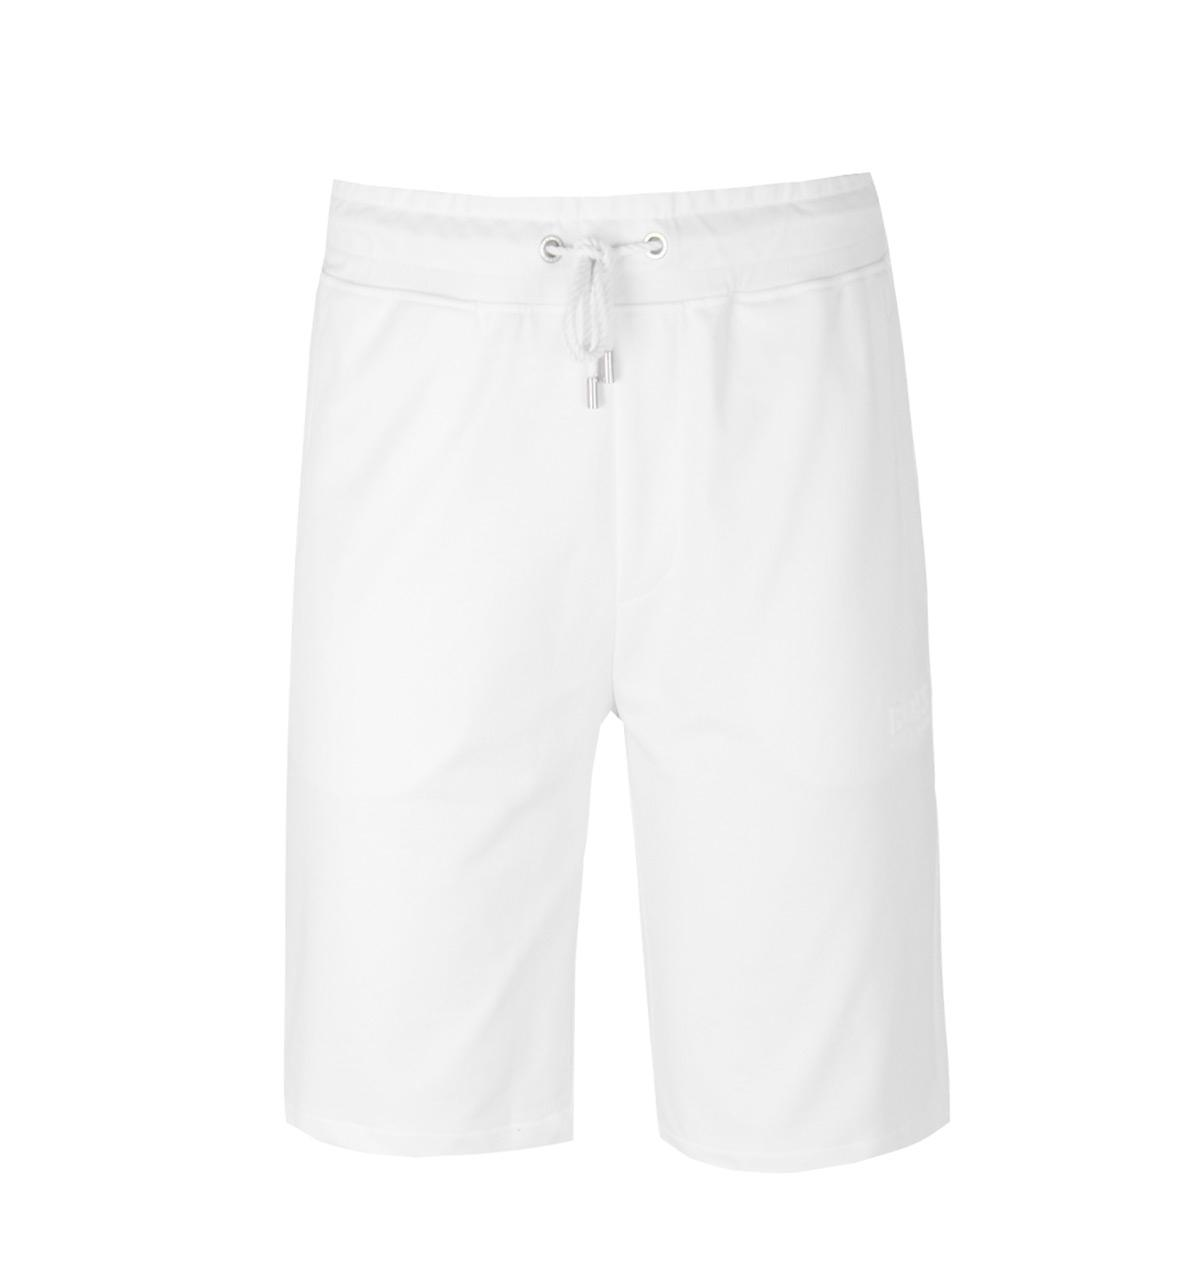 bcf06e9f8 Lyst - BOSS by Hugo Boss Boss Heritage White Sweat Shorts in White ...